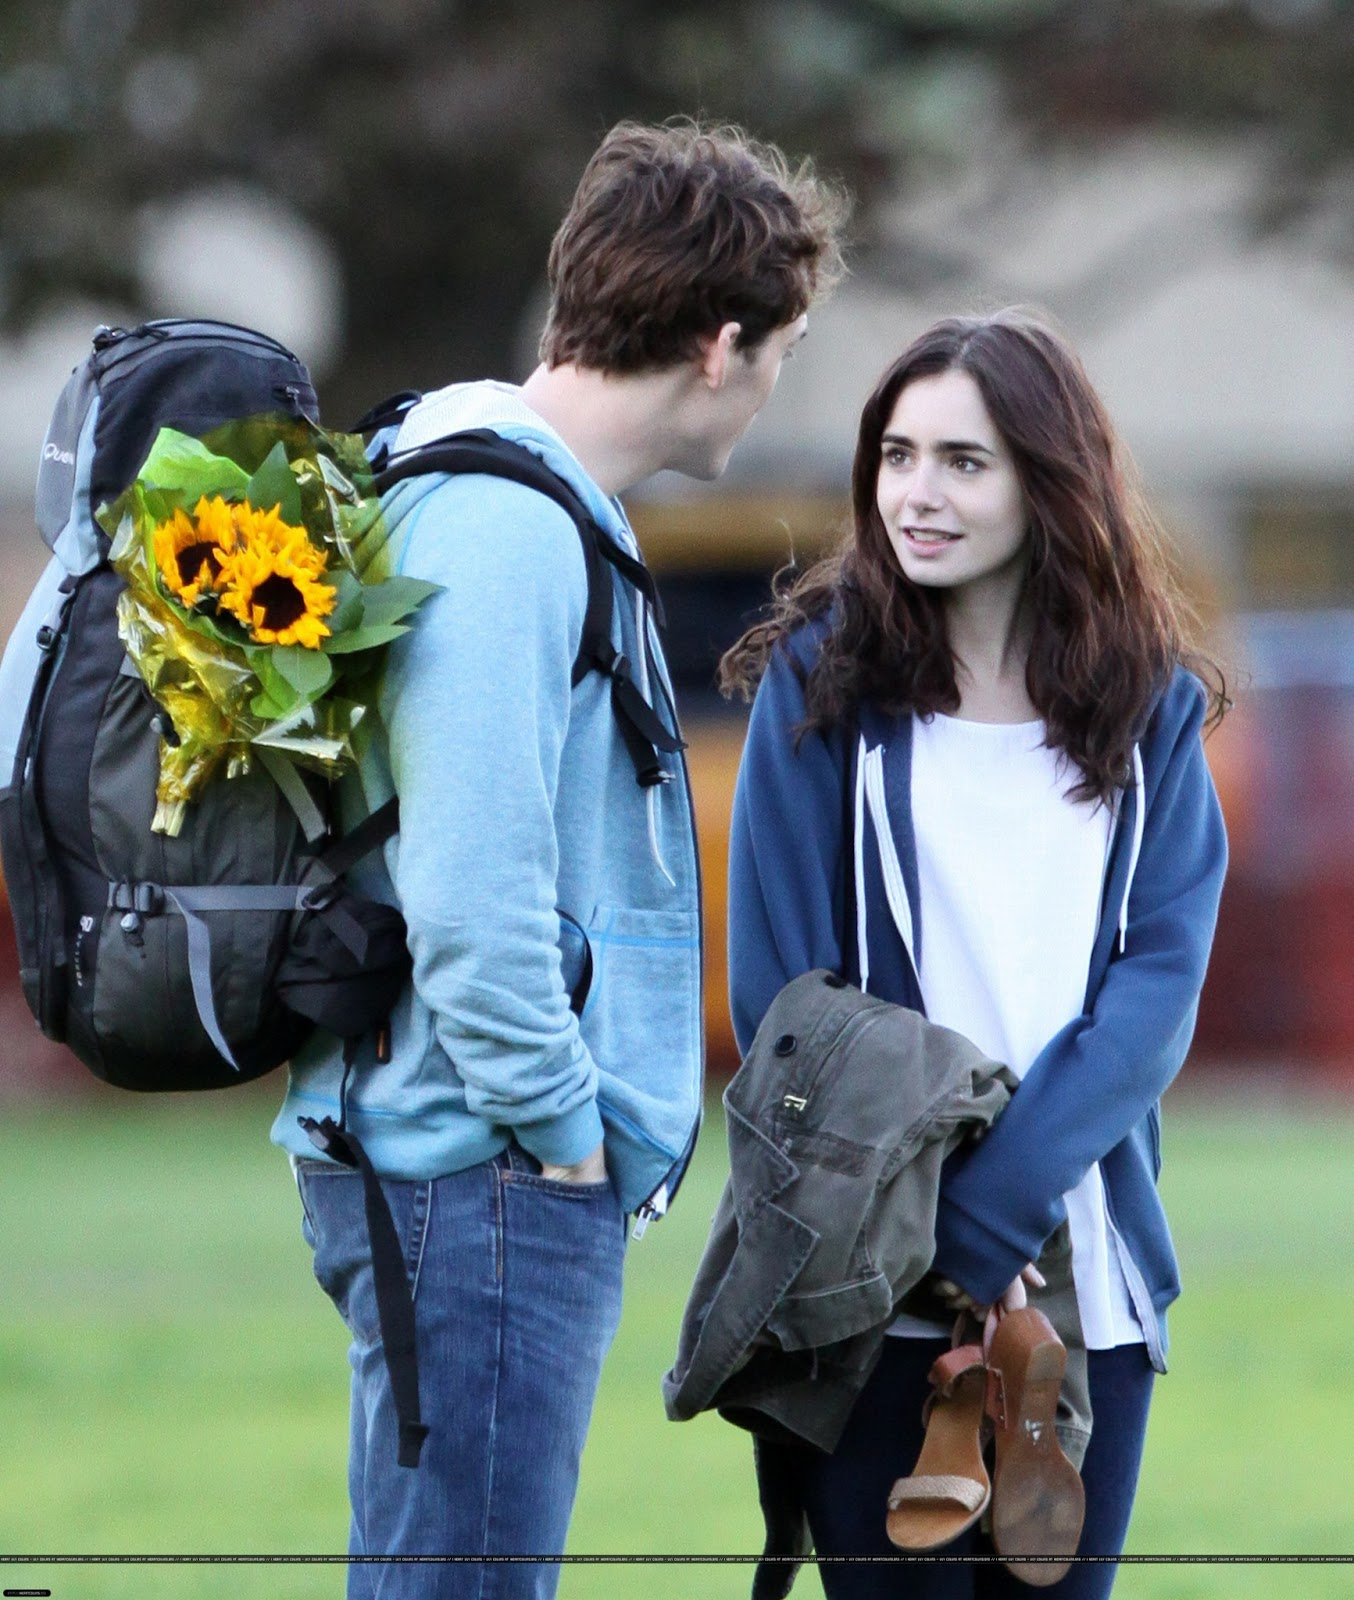 Review: Love, Rosie - Grownup Fangirl